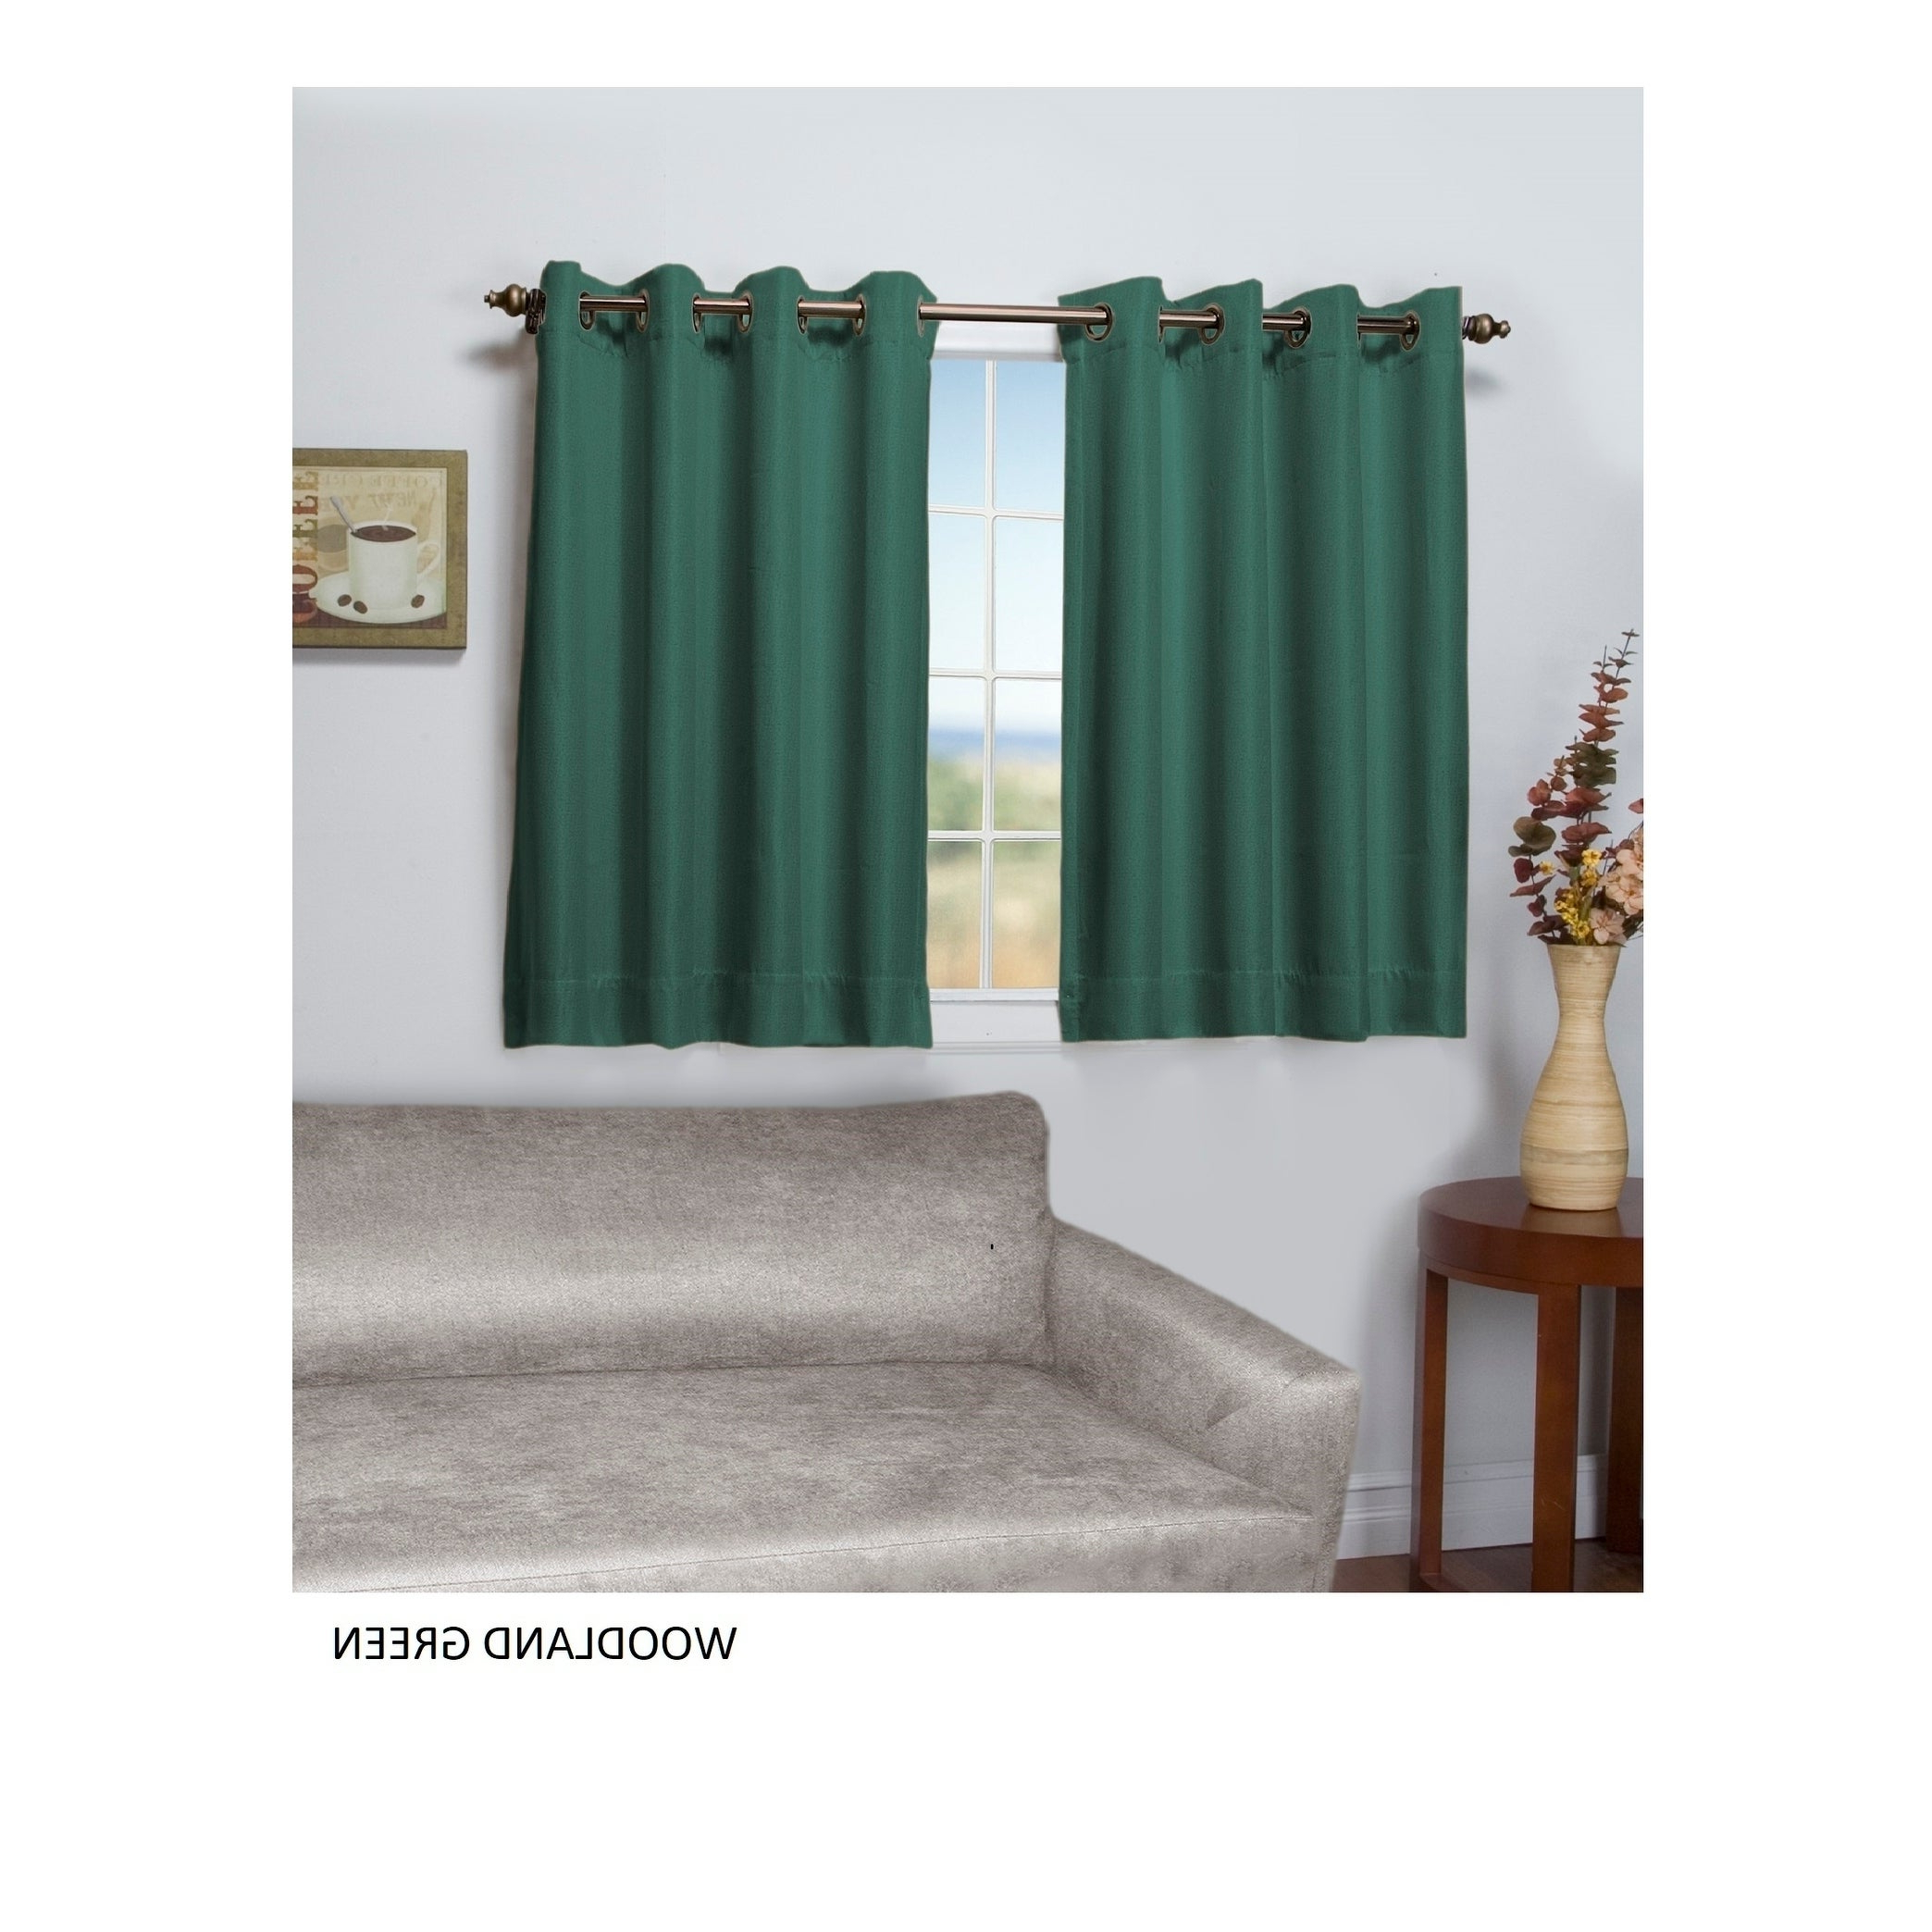 Popular Tacoma Double Blackout Grommet Curtain Panel – Short Length Regarding Tacoma Double Blackout Grommet Curtain Panels (View 5 of 20)